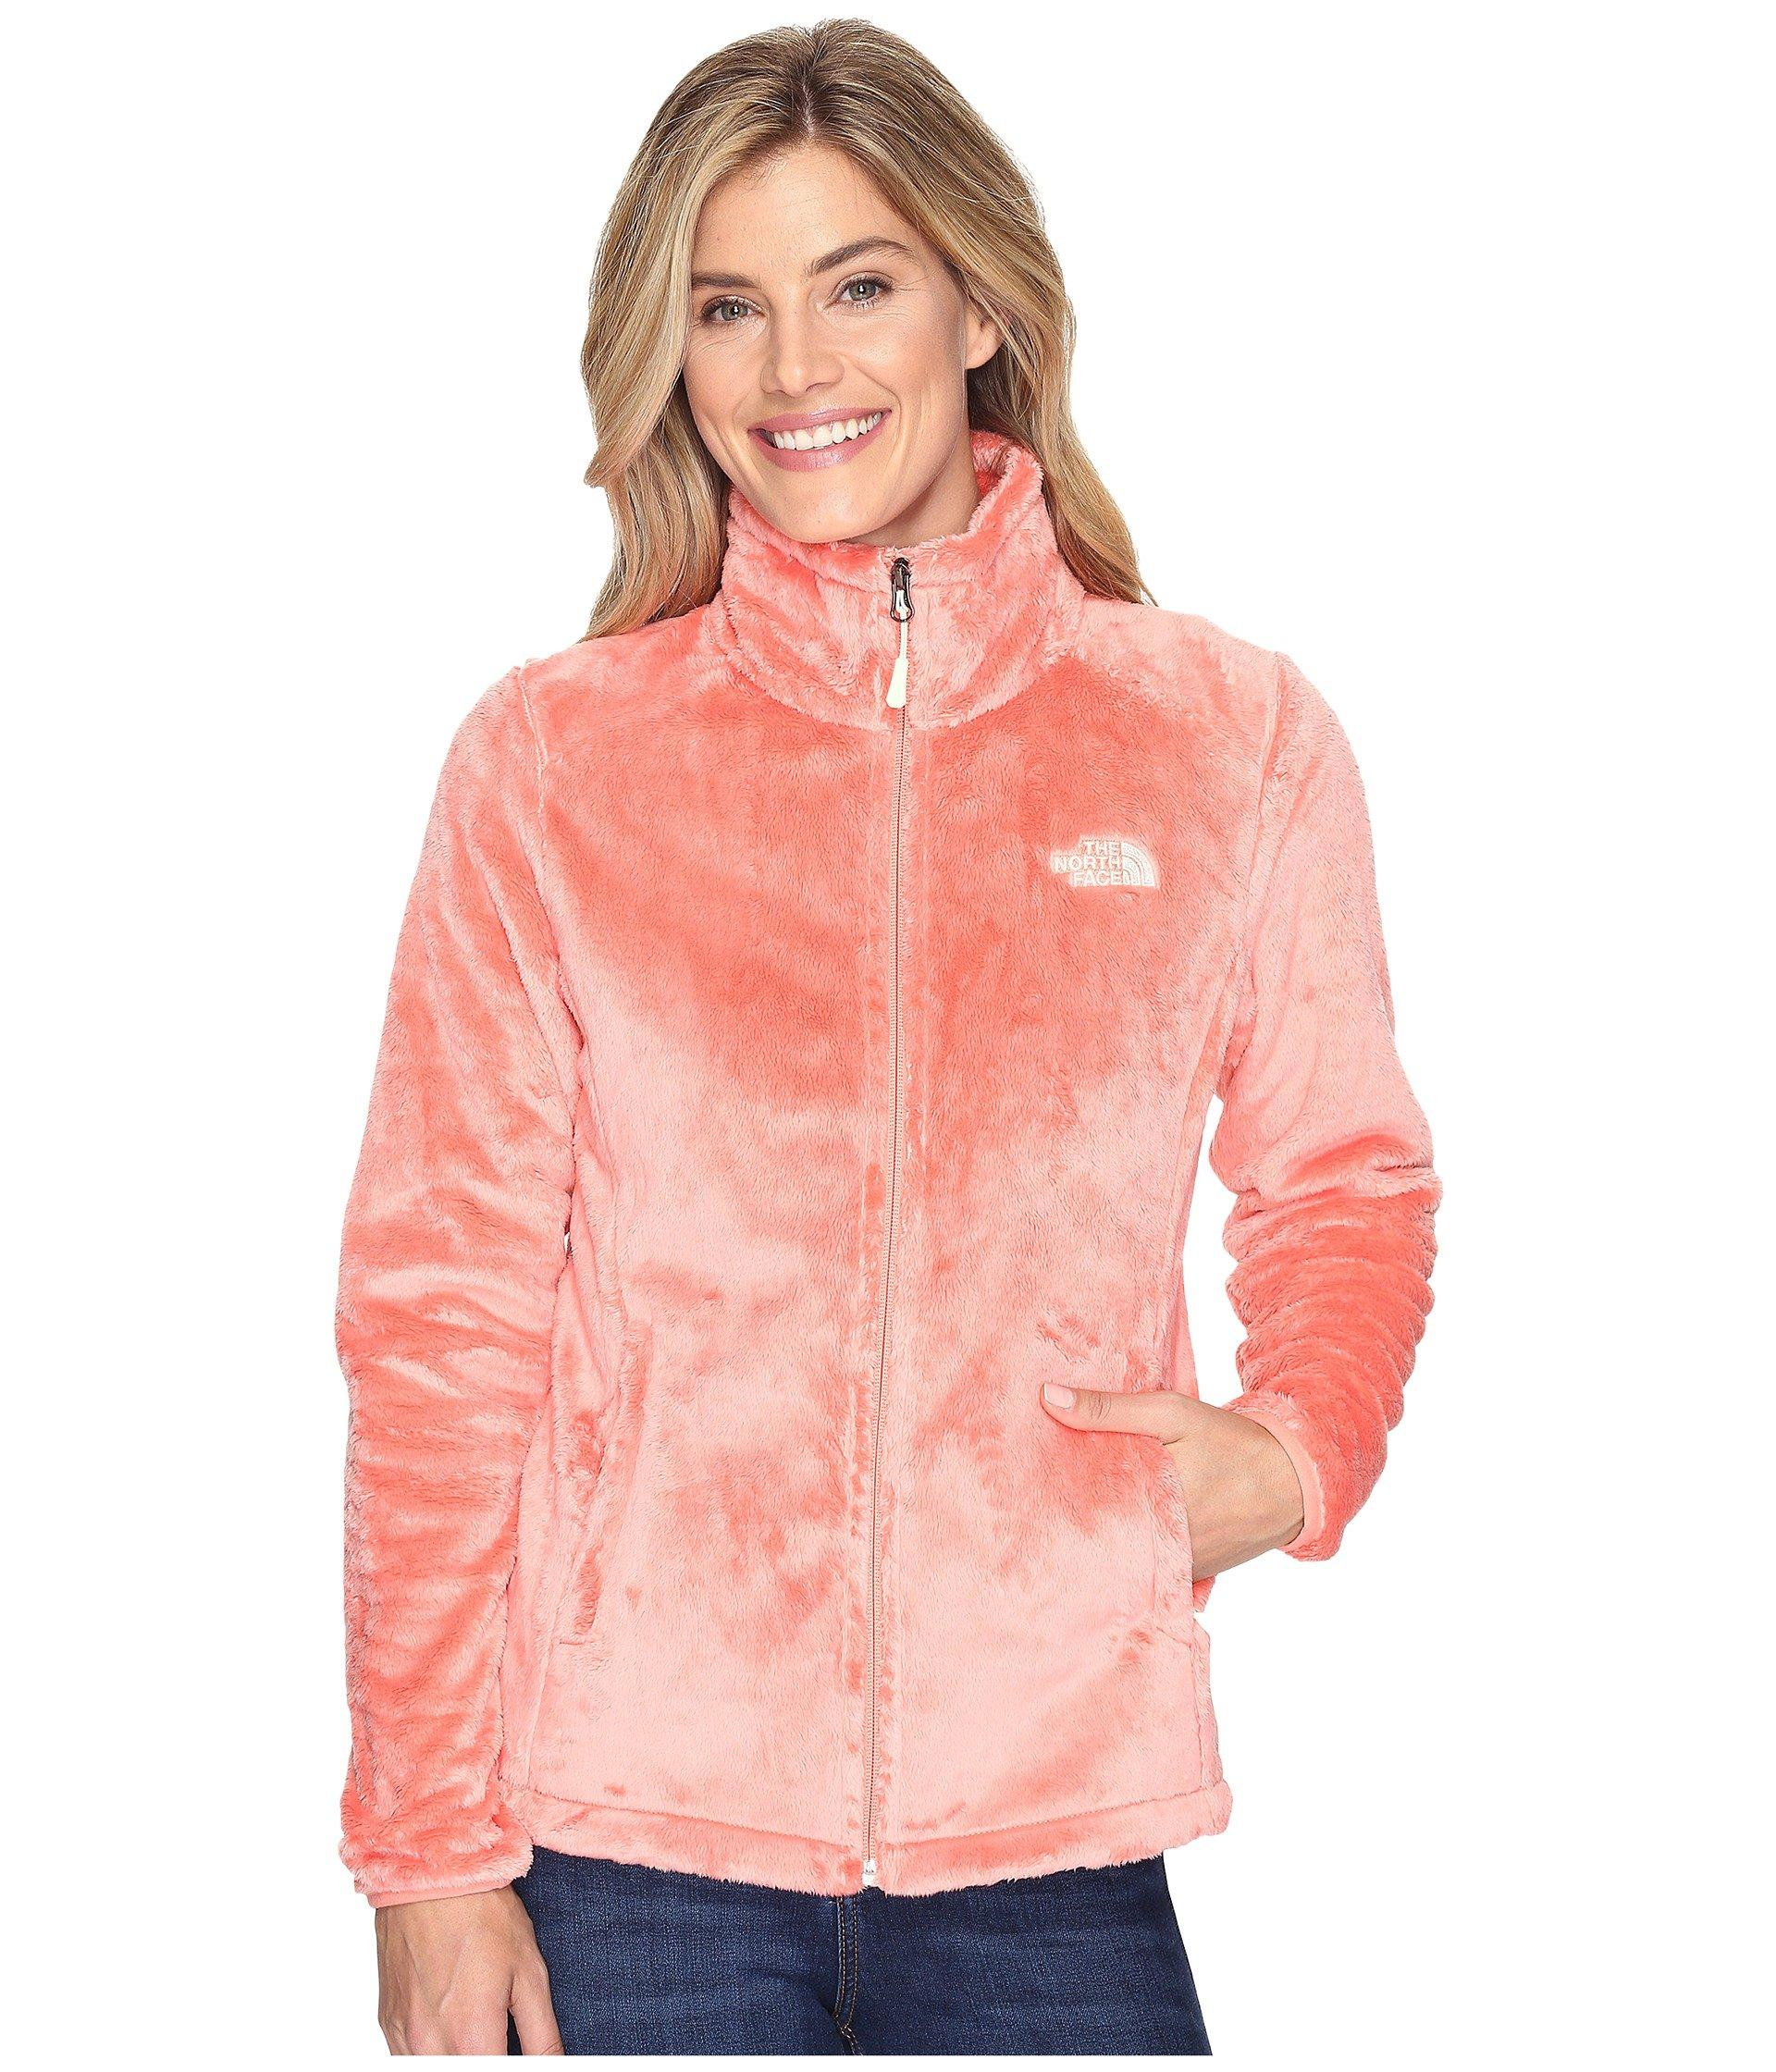 afaad8a38 Osito 2 Jacket in Burnt Coral (Prior Season)